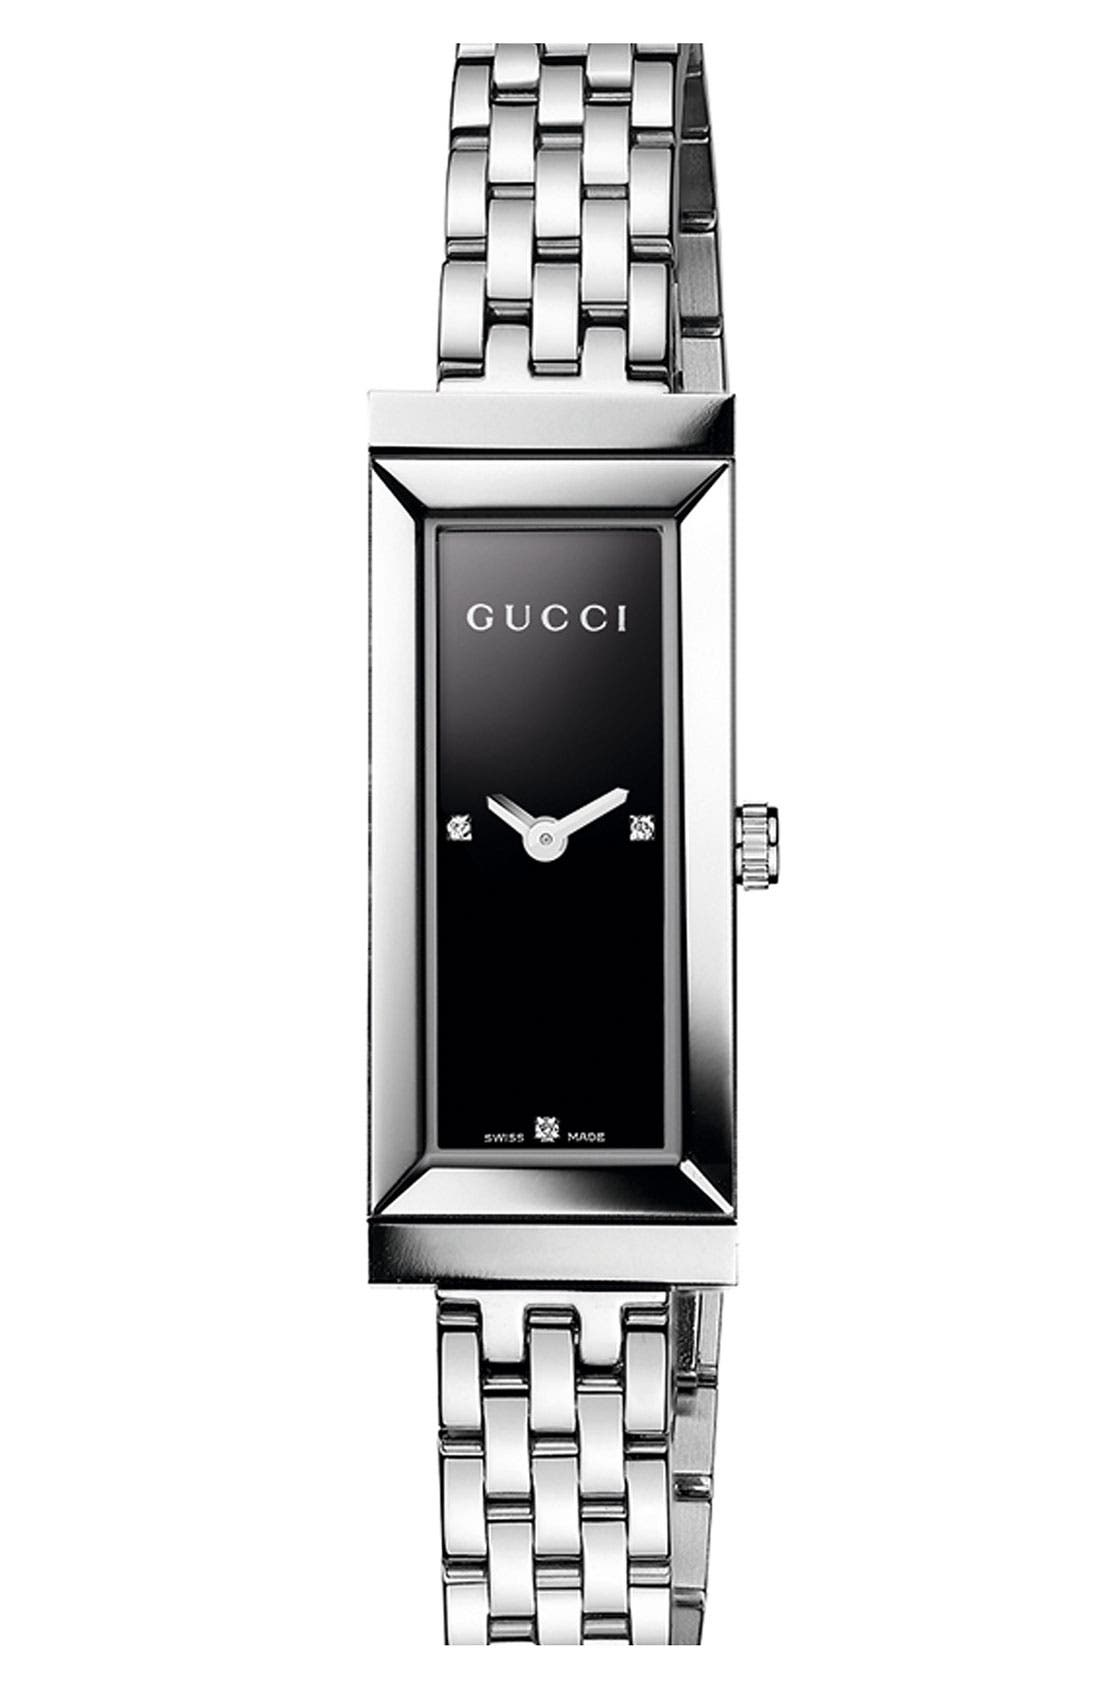 Main Image - Gucci 'G-Frame' Small Rectangle Bracelet Watch, 15mm x 35mm